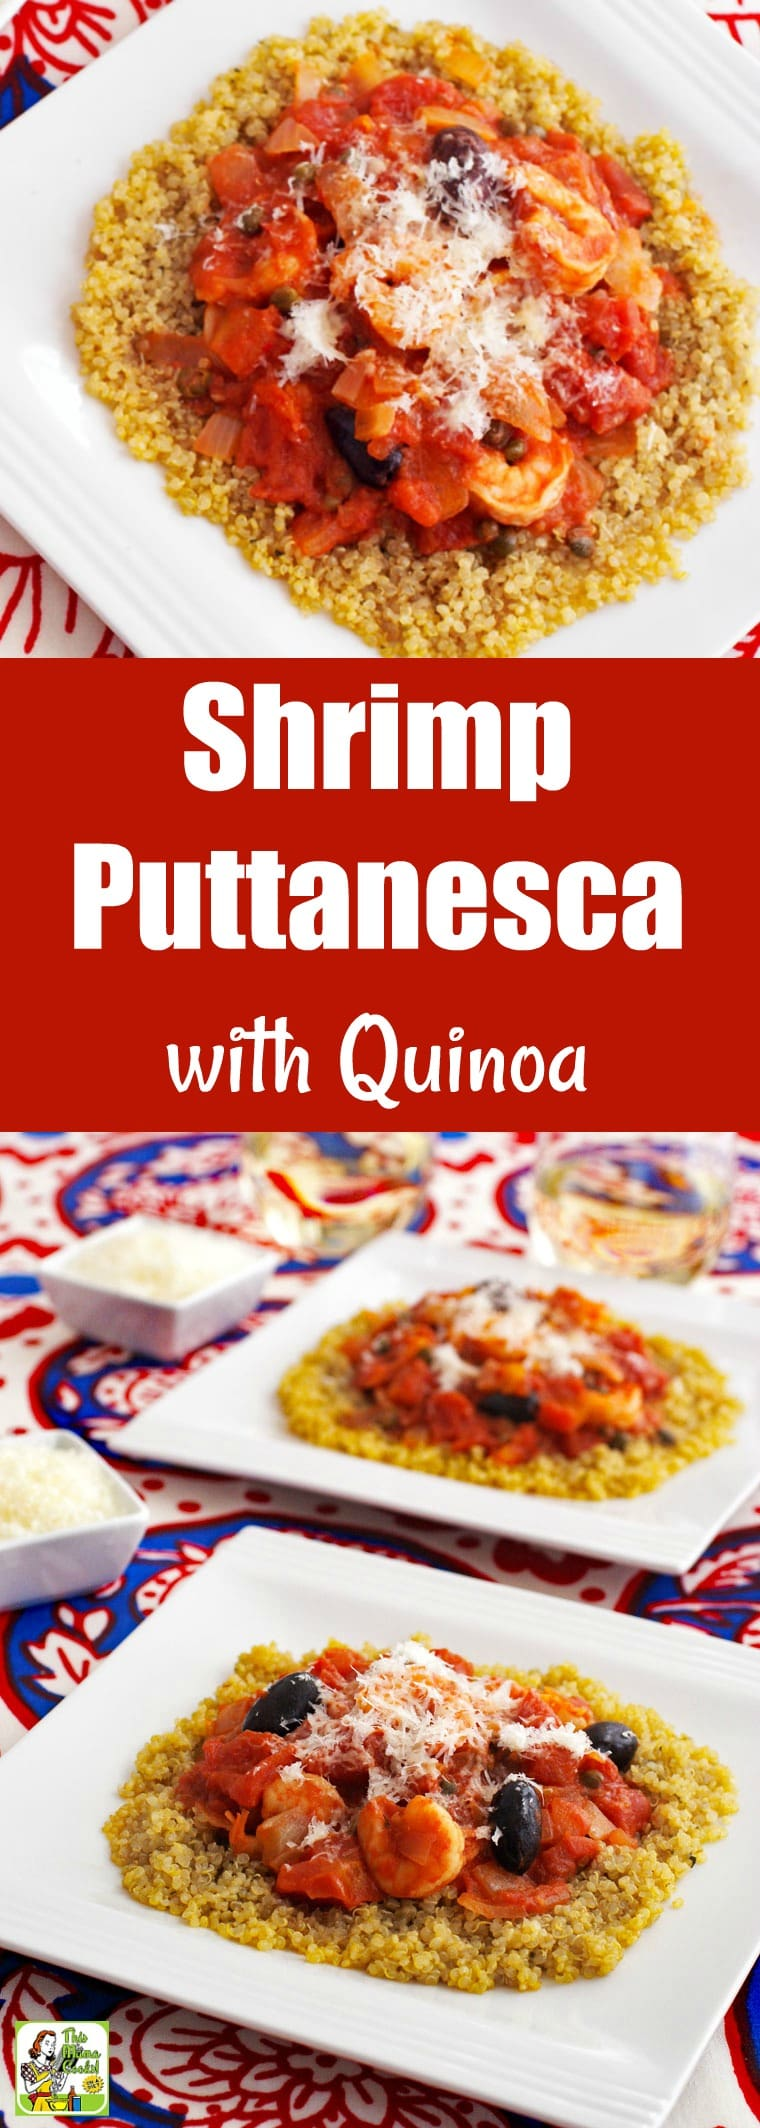 Shrimp Puttanesca with Quinoa Recipe